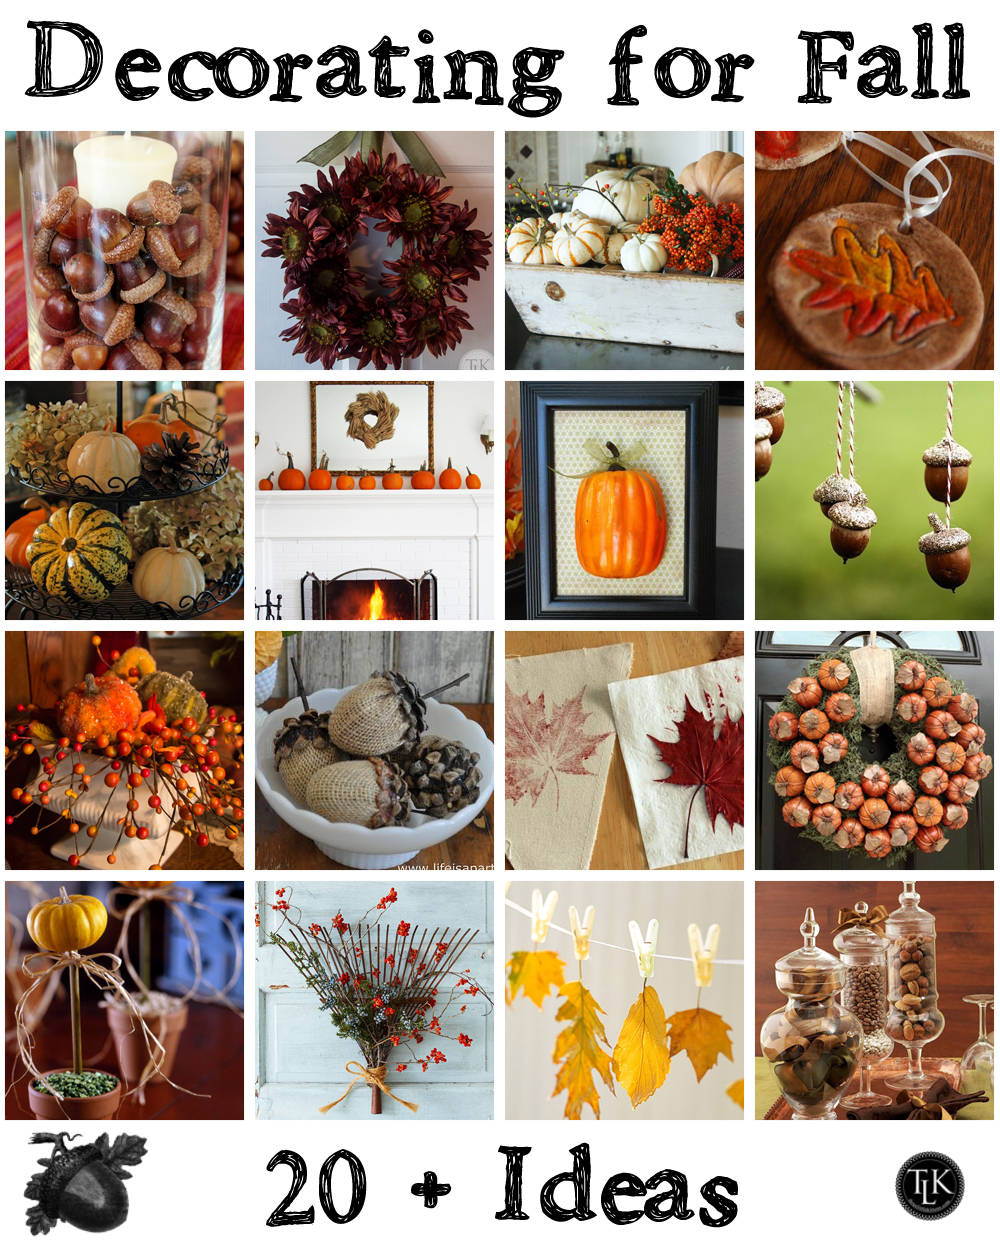 Decorating For Fall With Pinterest II